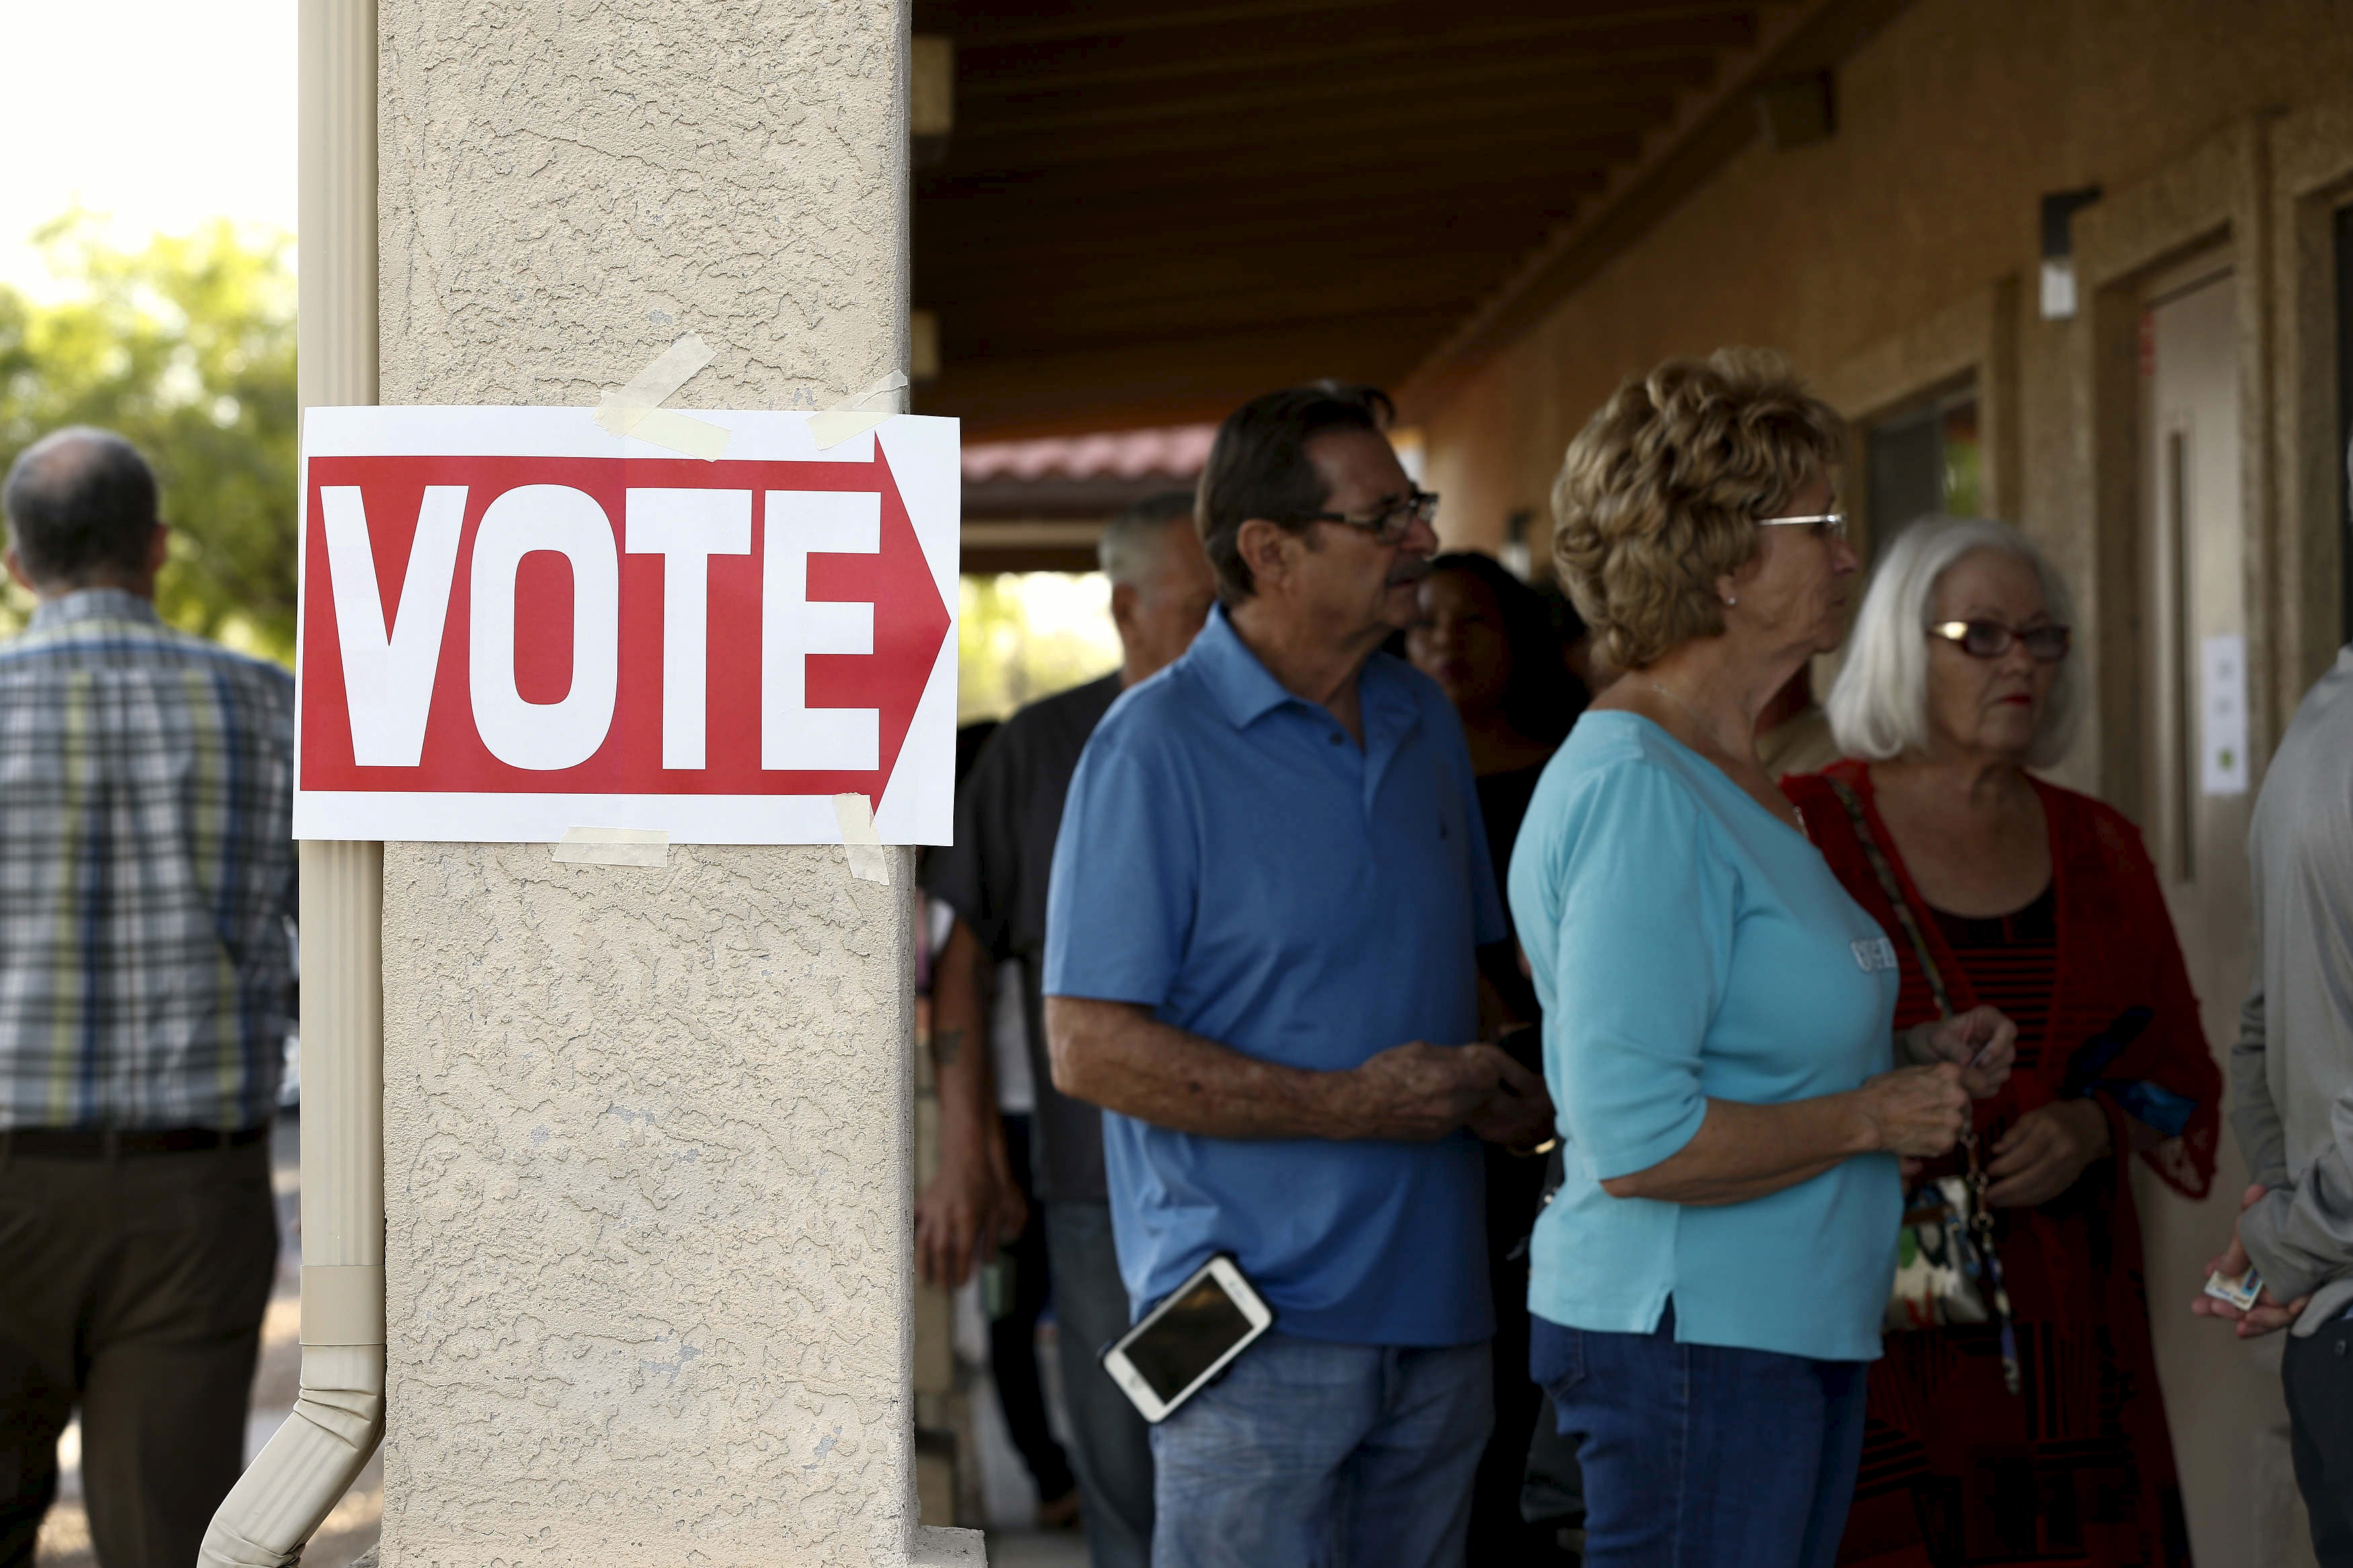 People wait to vote in the U.S. presidential primary election at a polling site in Glendale, Arizona March 22, 2016. Photo by Nancy Wiechec/Reuters